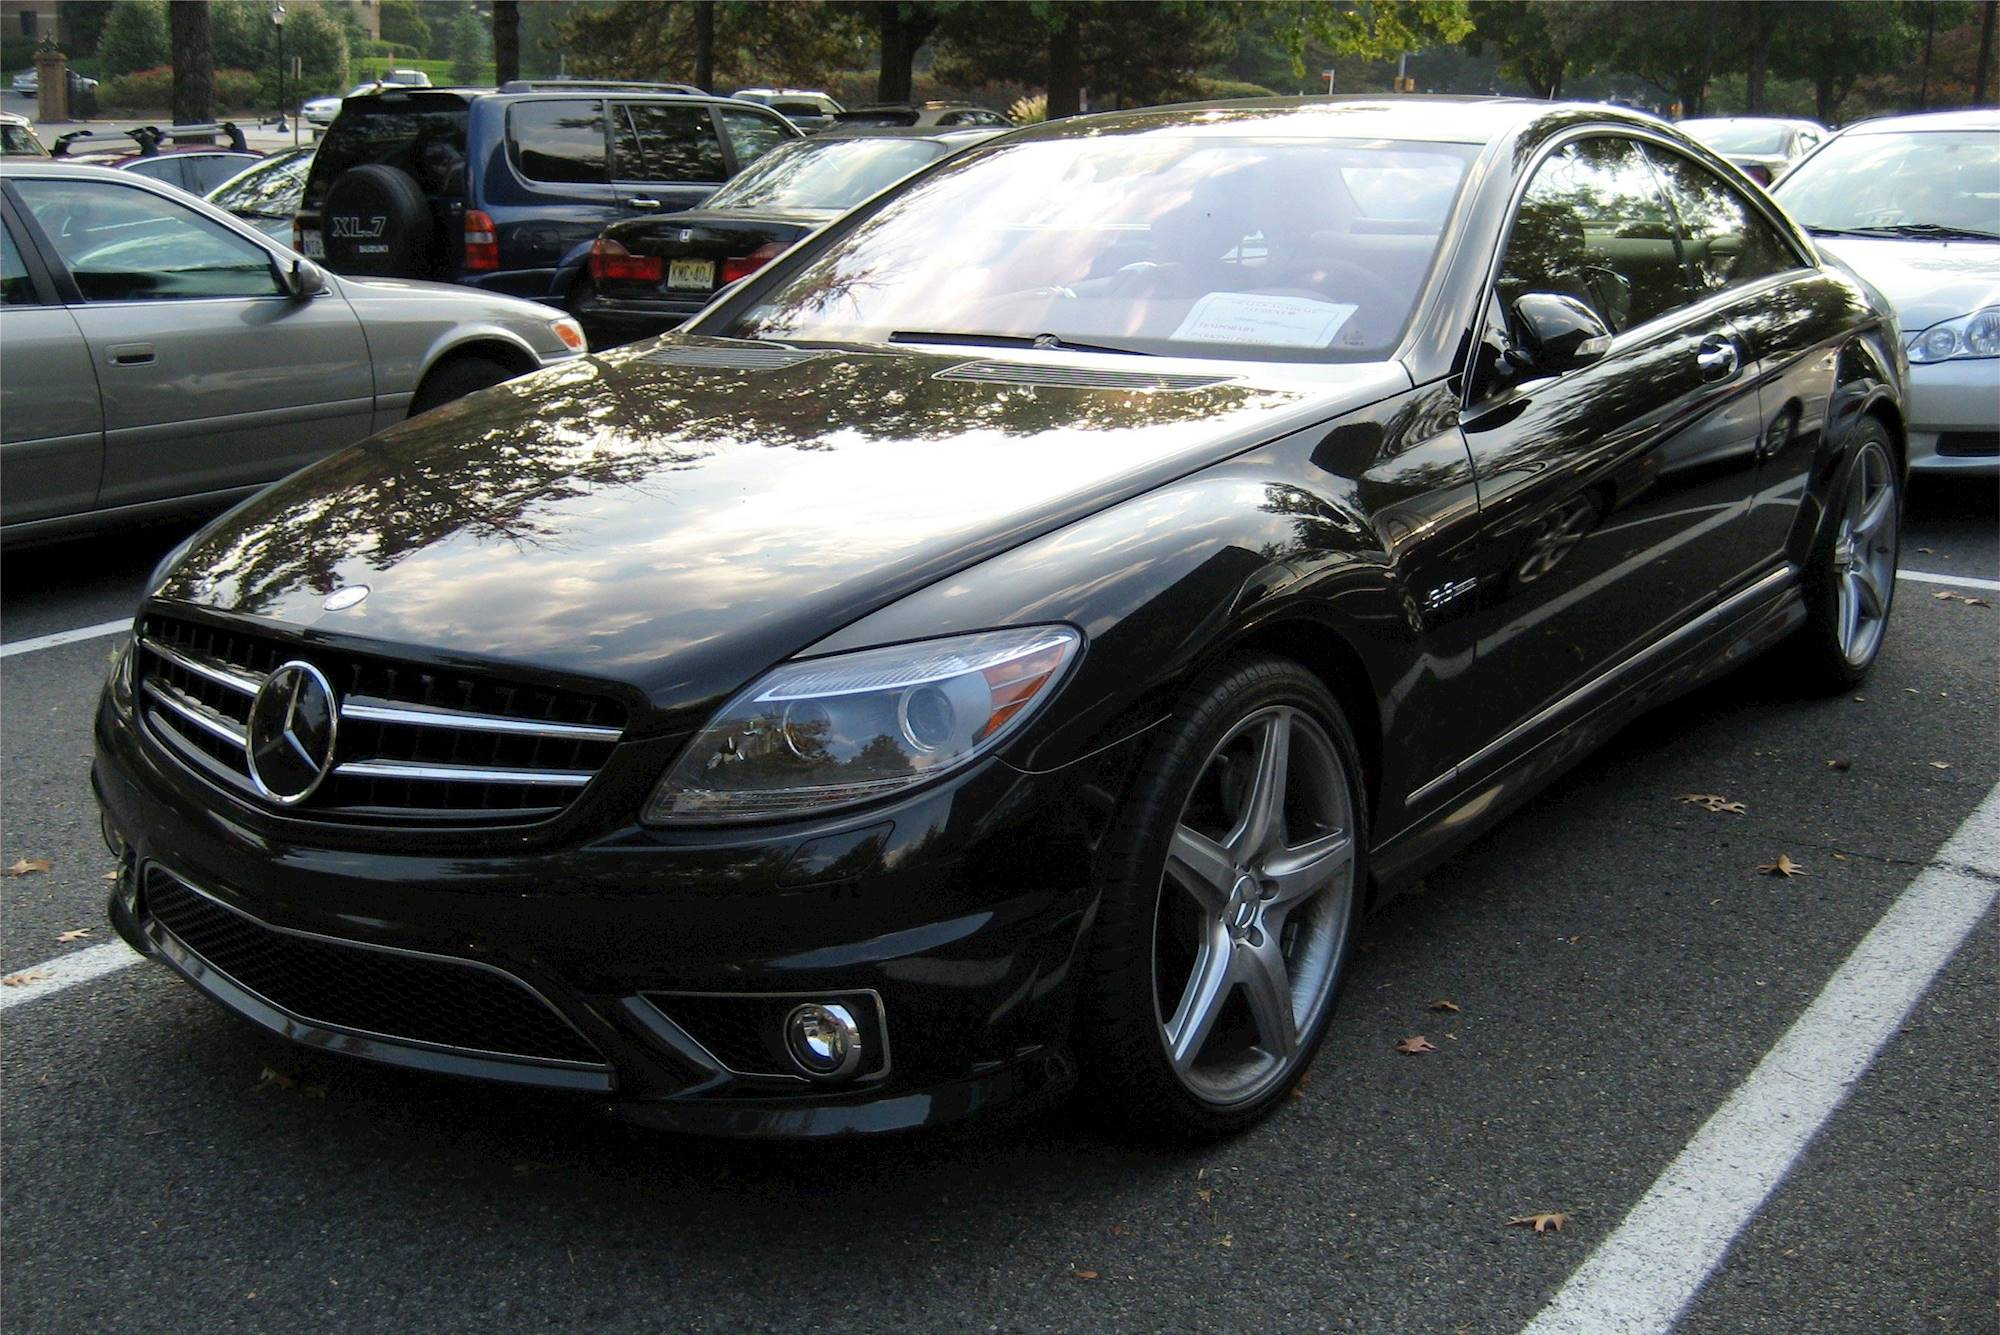 2008 Mercedes Benz CL63 AMG Base 2dr Coupe 7 spd TouchShift w